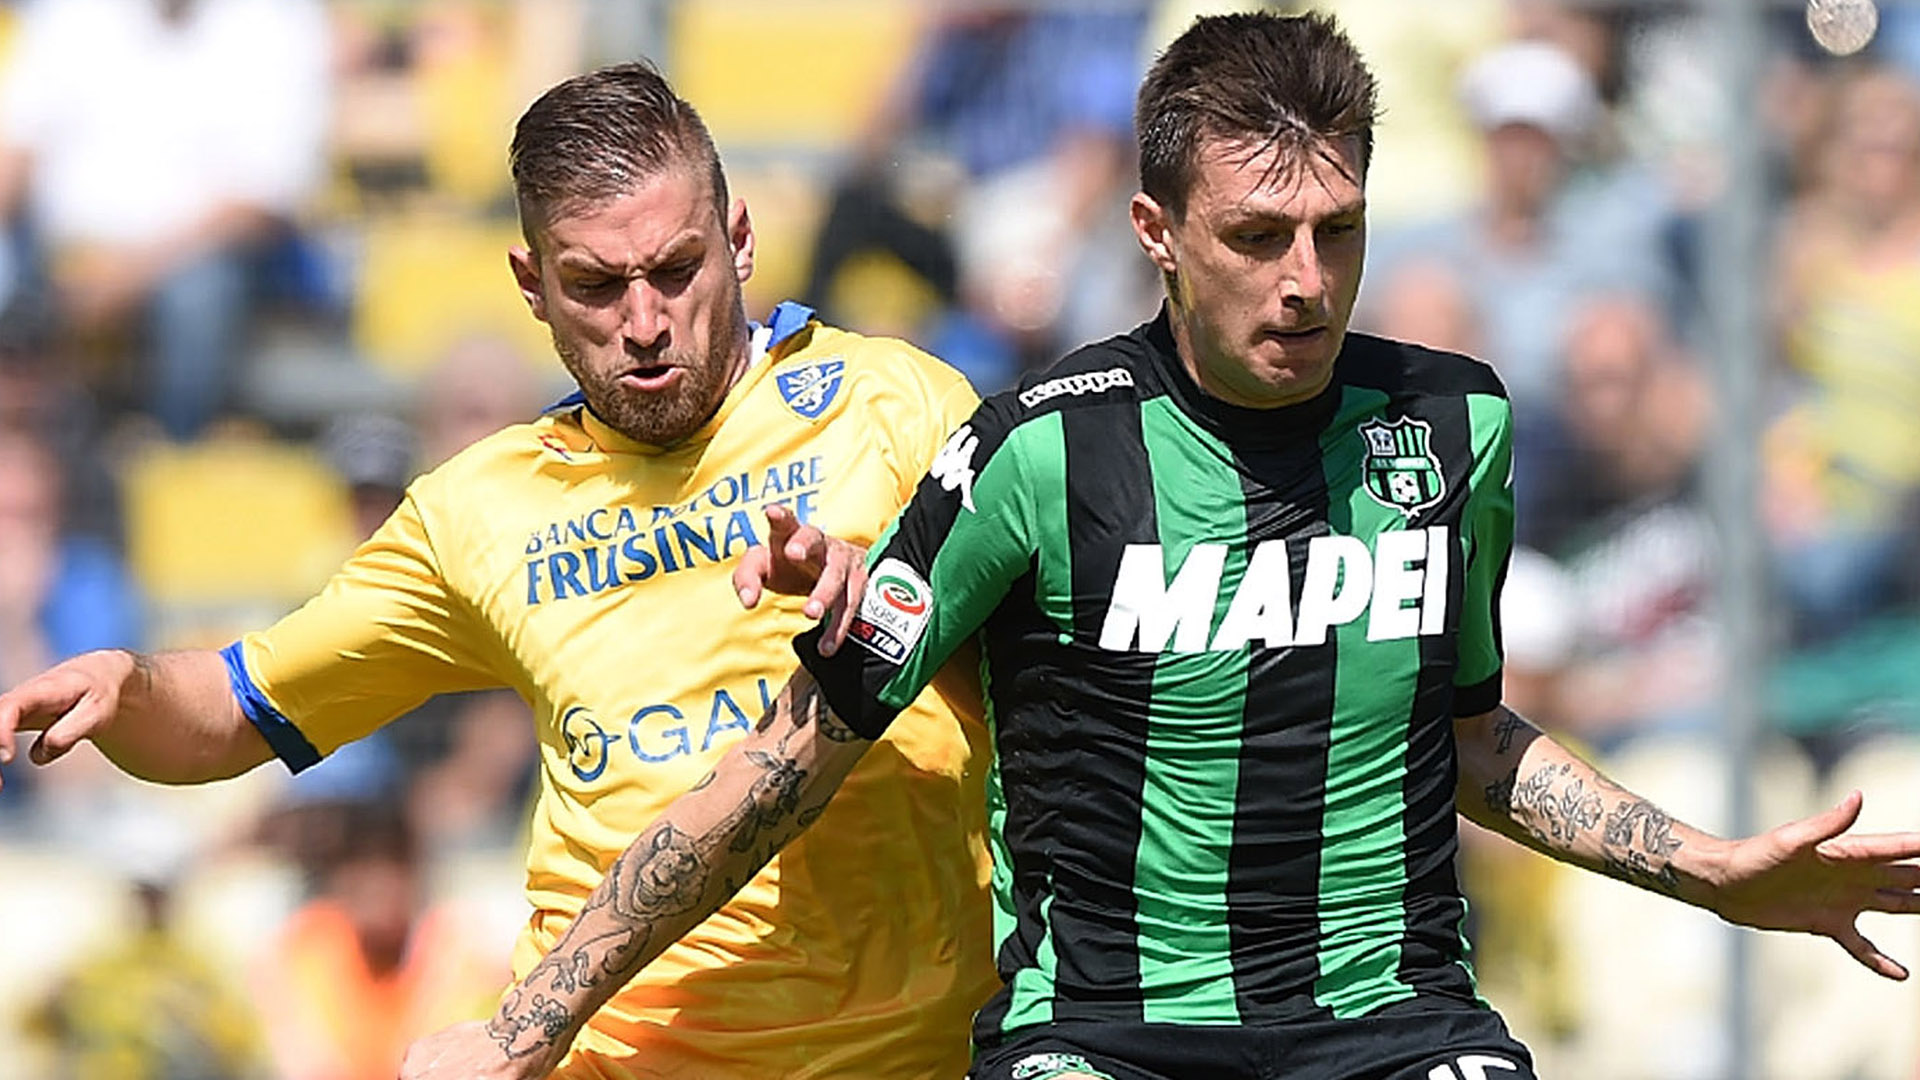 Video: Frosinone vs Sassuolo